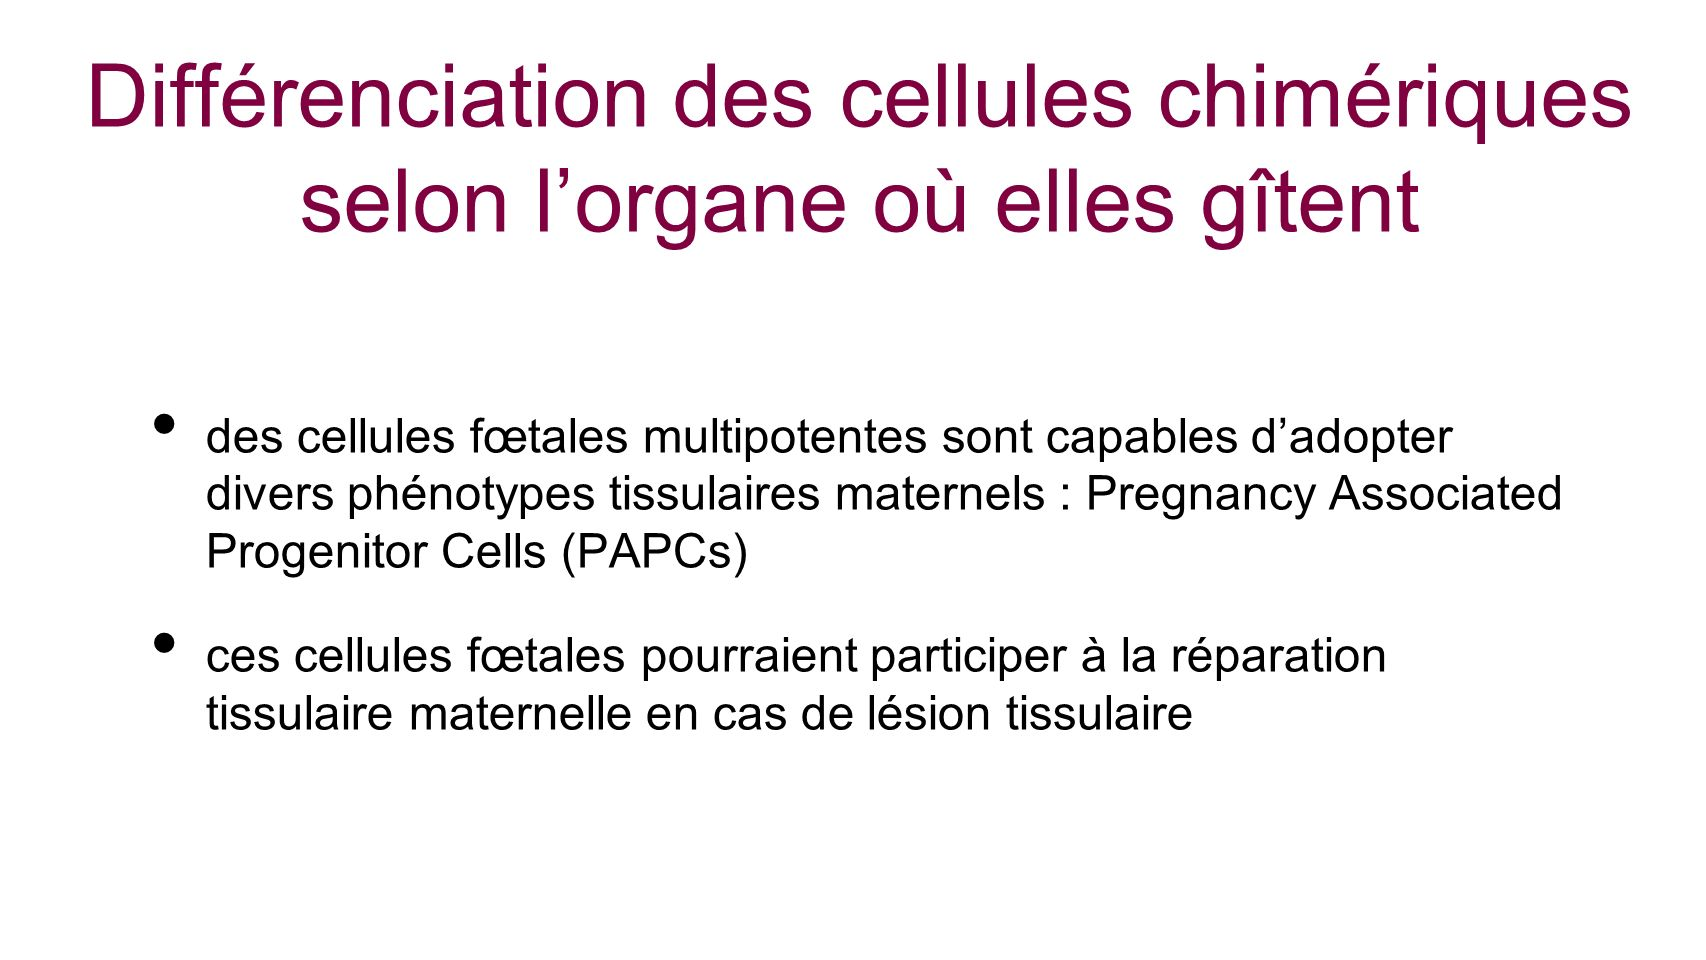 des cellules fœtales multipotentes sont capables dadopter divers phénotypes tissulaires maternels : Pregnancy Associated Progenitor Cells (PAPCs) ces